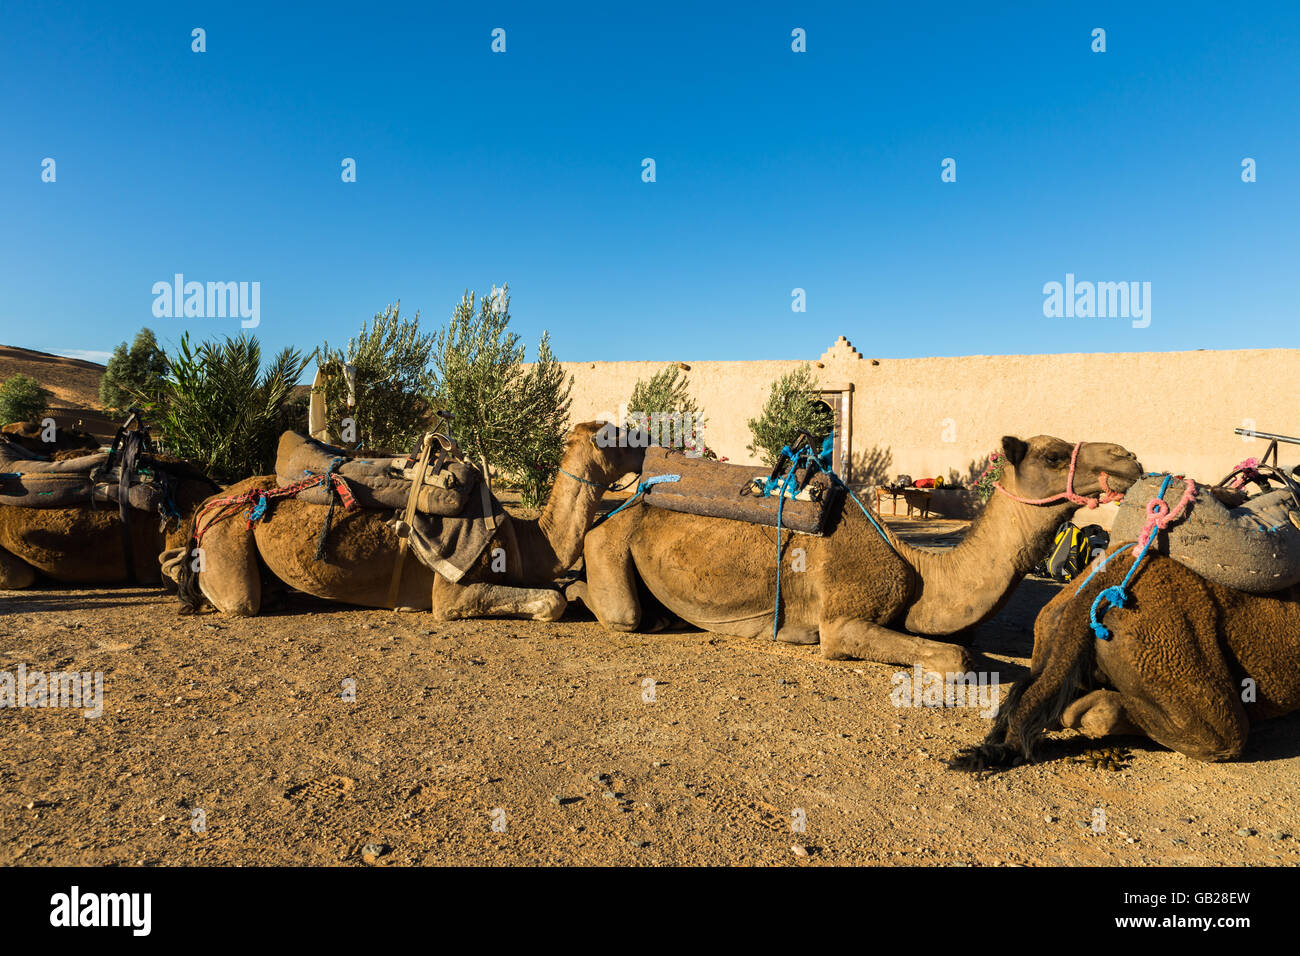 camels in the camp of the Berbers - Stock Image